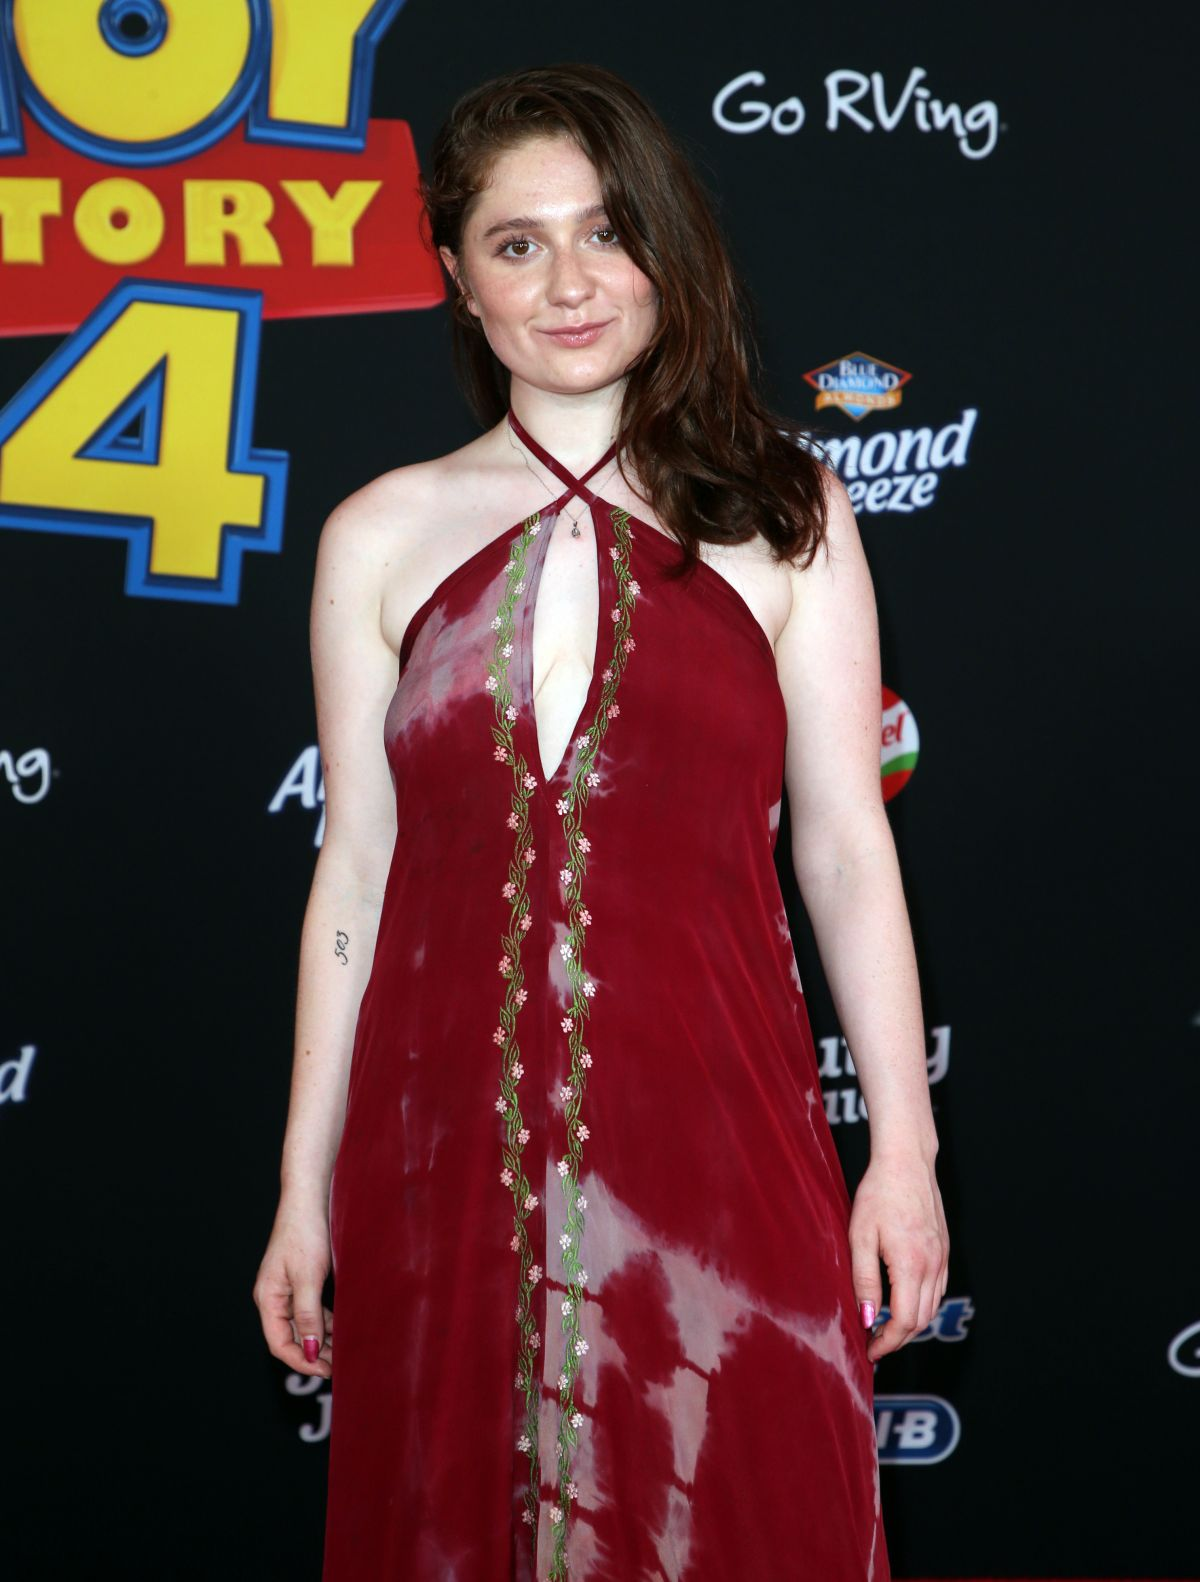 EMMA KENNEY at Toy Story 4 Premiere in Los Angeles 06/11 ... Emma Kenney 2019 Shameless